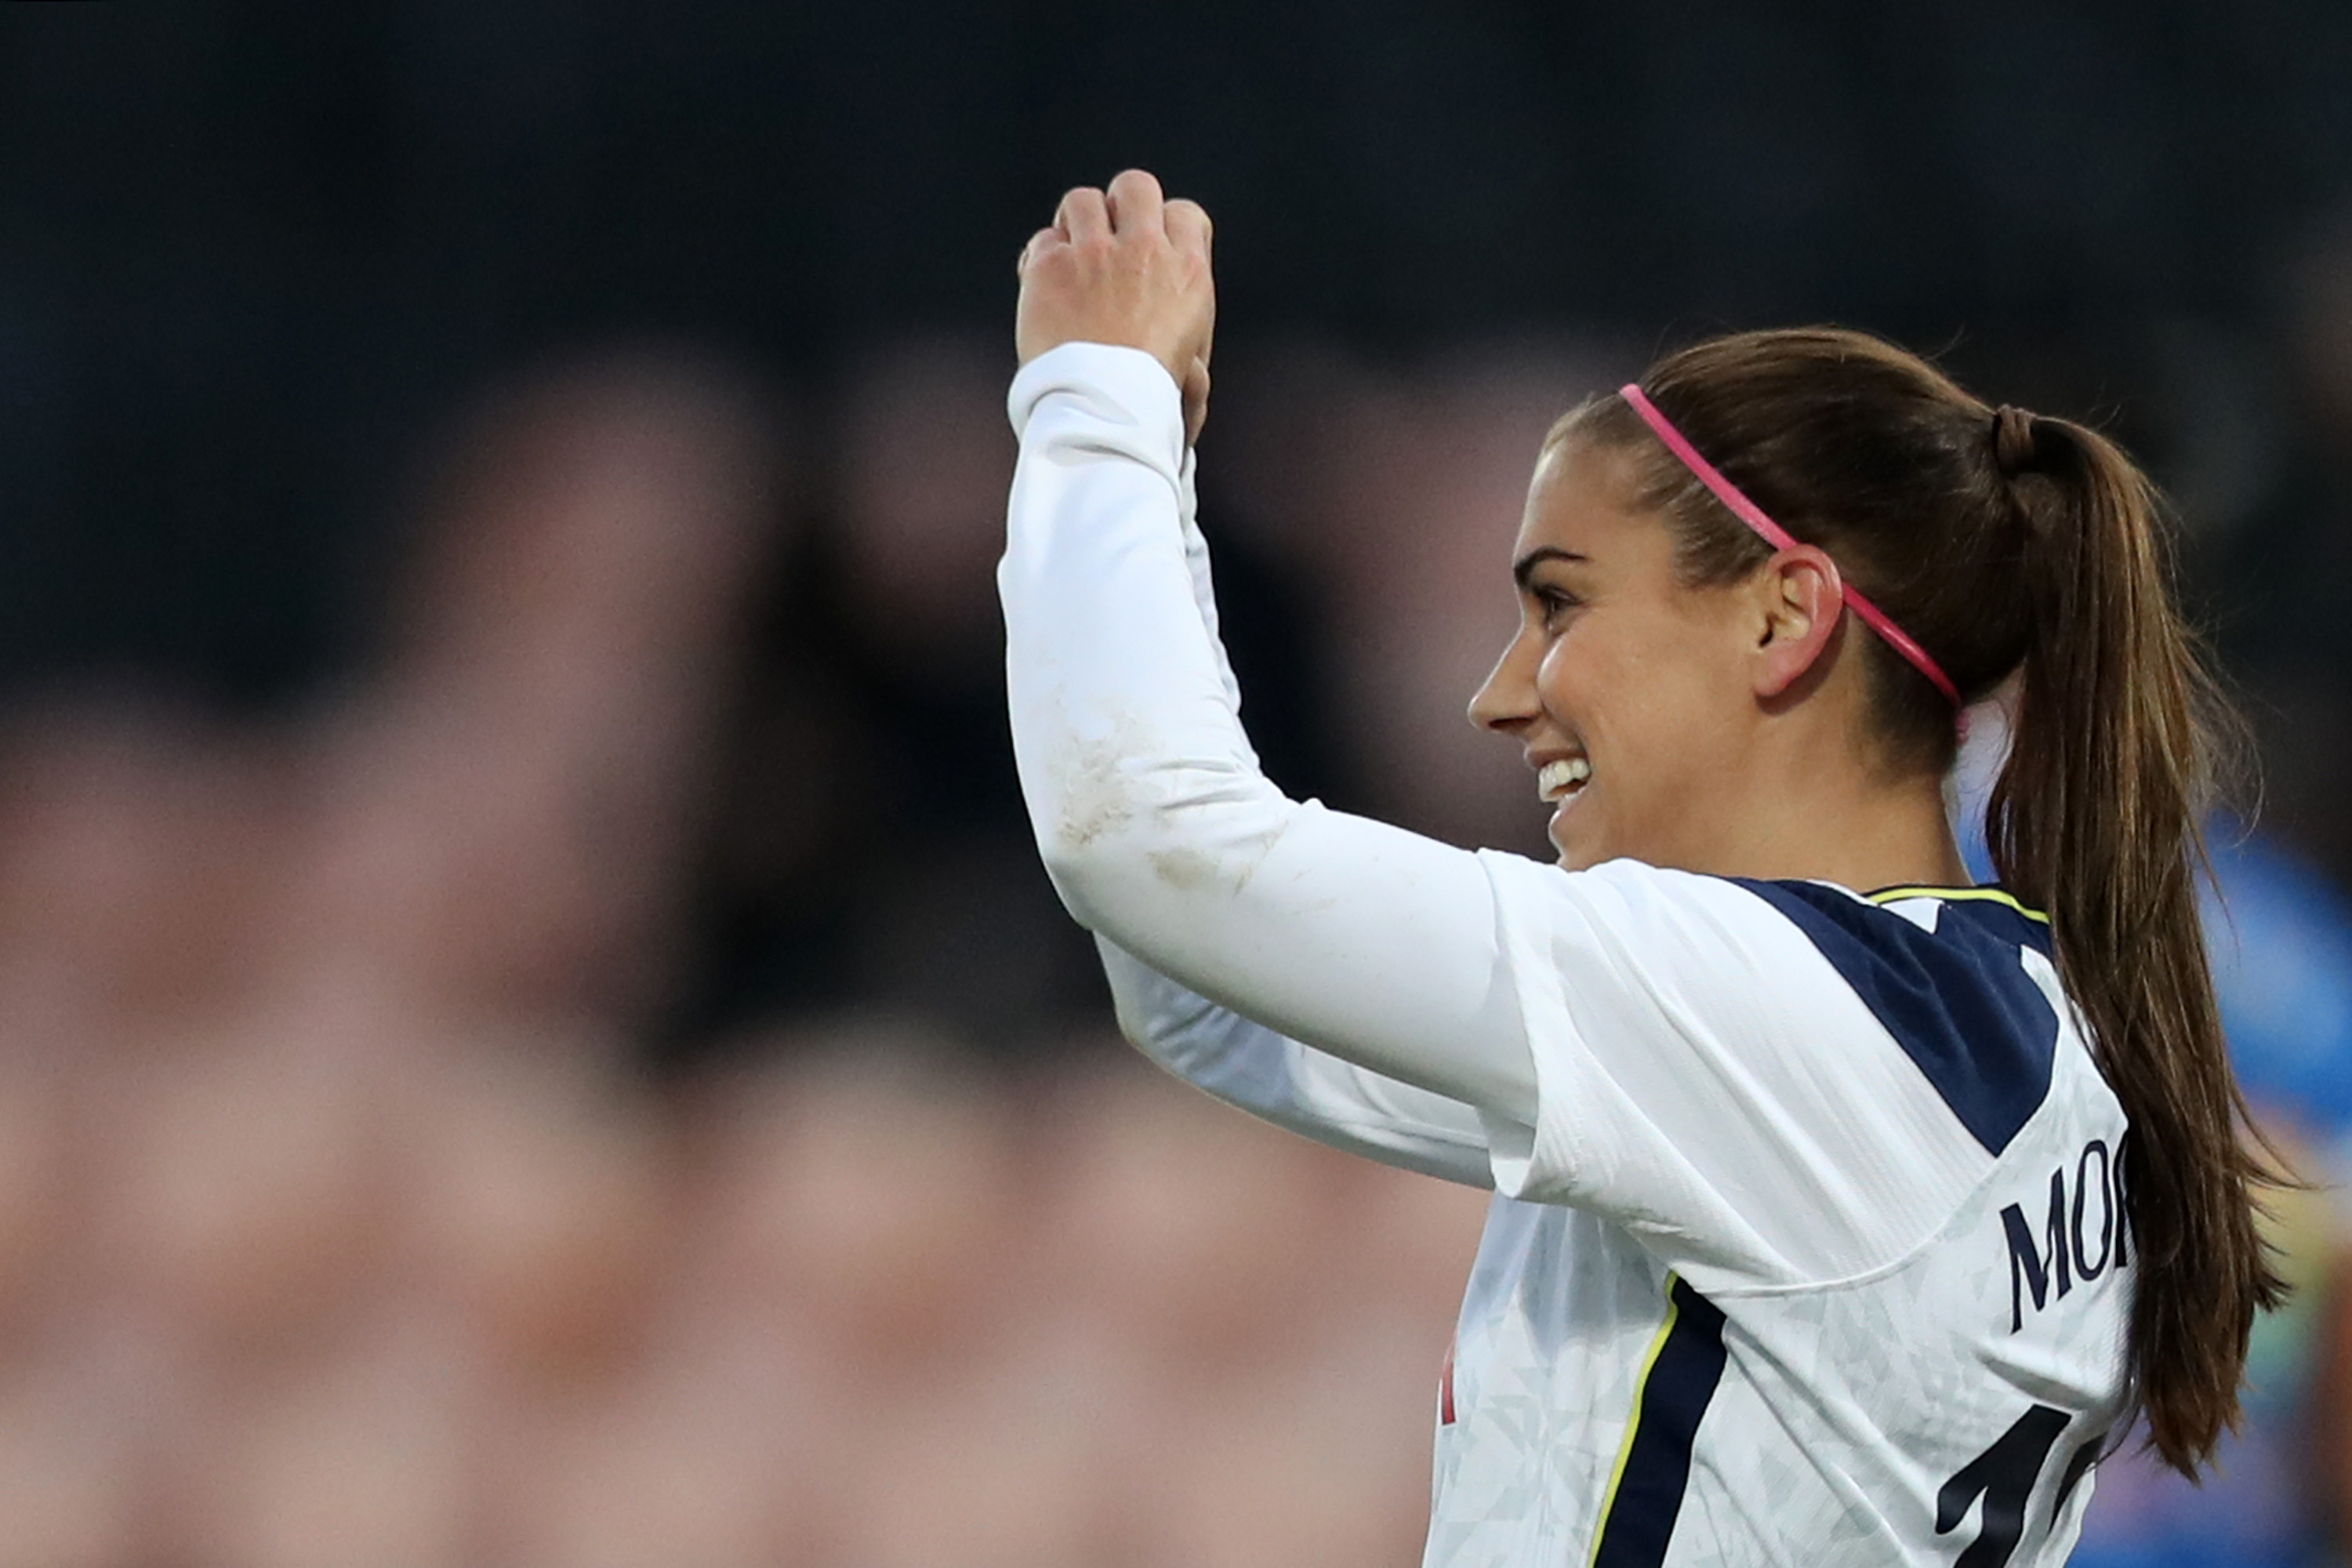 BARNET, ENGLAND - DECEMBER 06: Alex Morgan of Tottenham Hotspur  celebrates after scoring their team's third goal and makes a heart shape with her hands towards her Daughter and Husband in the stands watching the match during the Barclays FA Women's Super League match between Tottenham Hotspur Women and Brighton & Hove Albion Women at The Hive on December 06, 2020 in Barnet, England. A limited number of fans are welcomed back to stadiums to watch elite football across England. This was following easing of restrictions on spectators in tiers one and two areas only. (Photo by Naomi Baker/Getty Images)